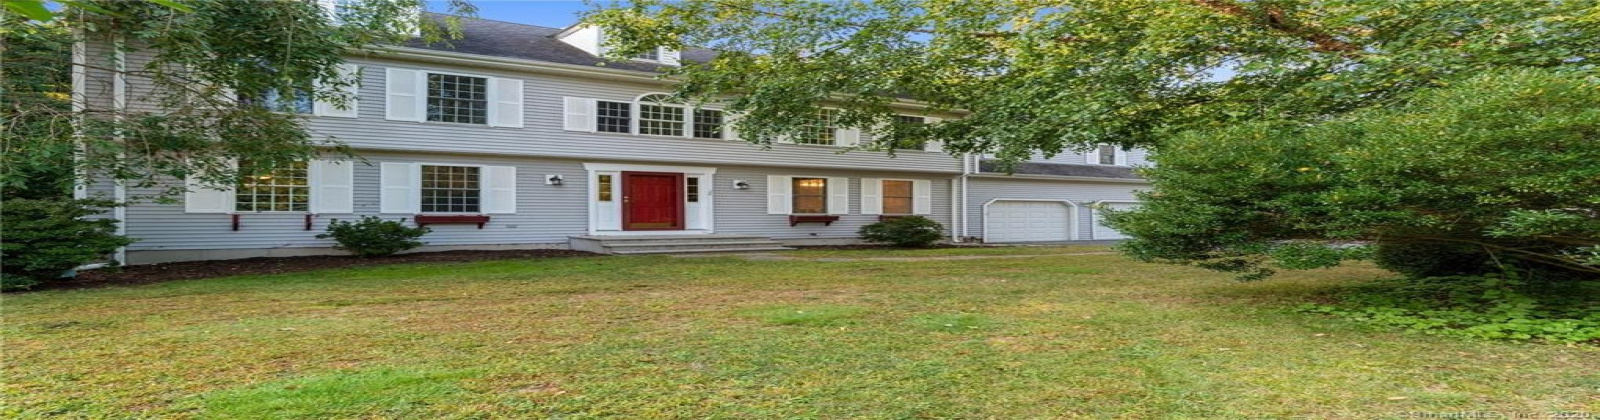 36 Ledge Rd, Old Saybrook, Connecticut 06475, 4 Bedrooms Bedrooms, ,3 BathroomsBathrooms,Apartment,For Sale,Ledge Rd,1000